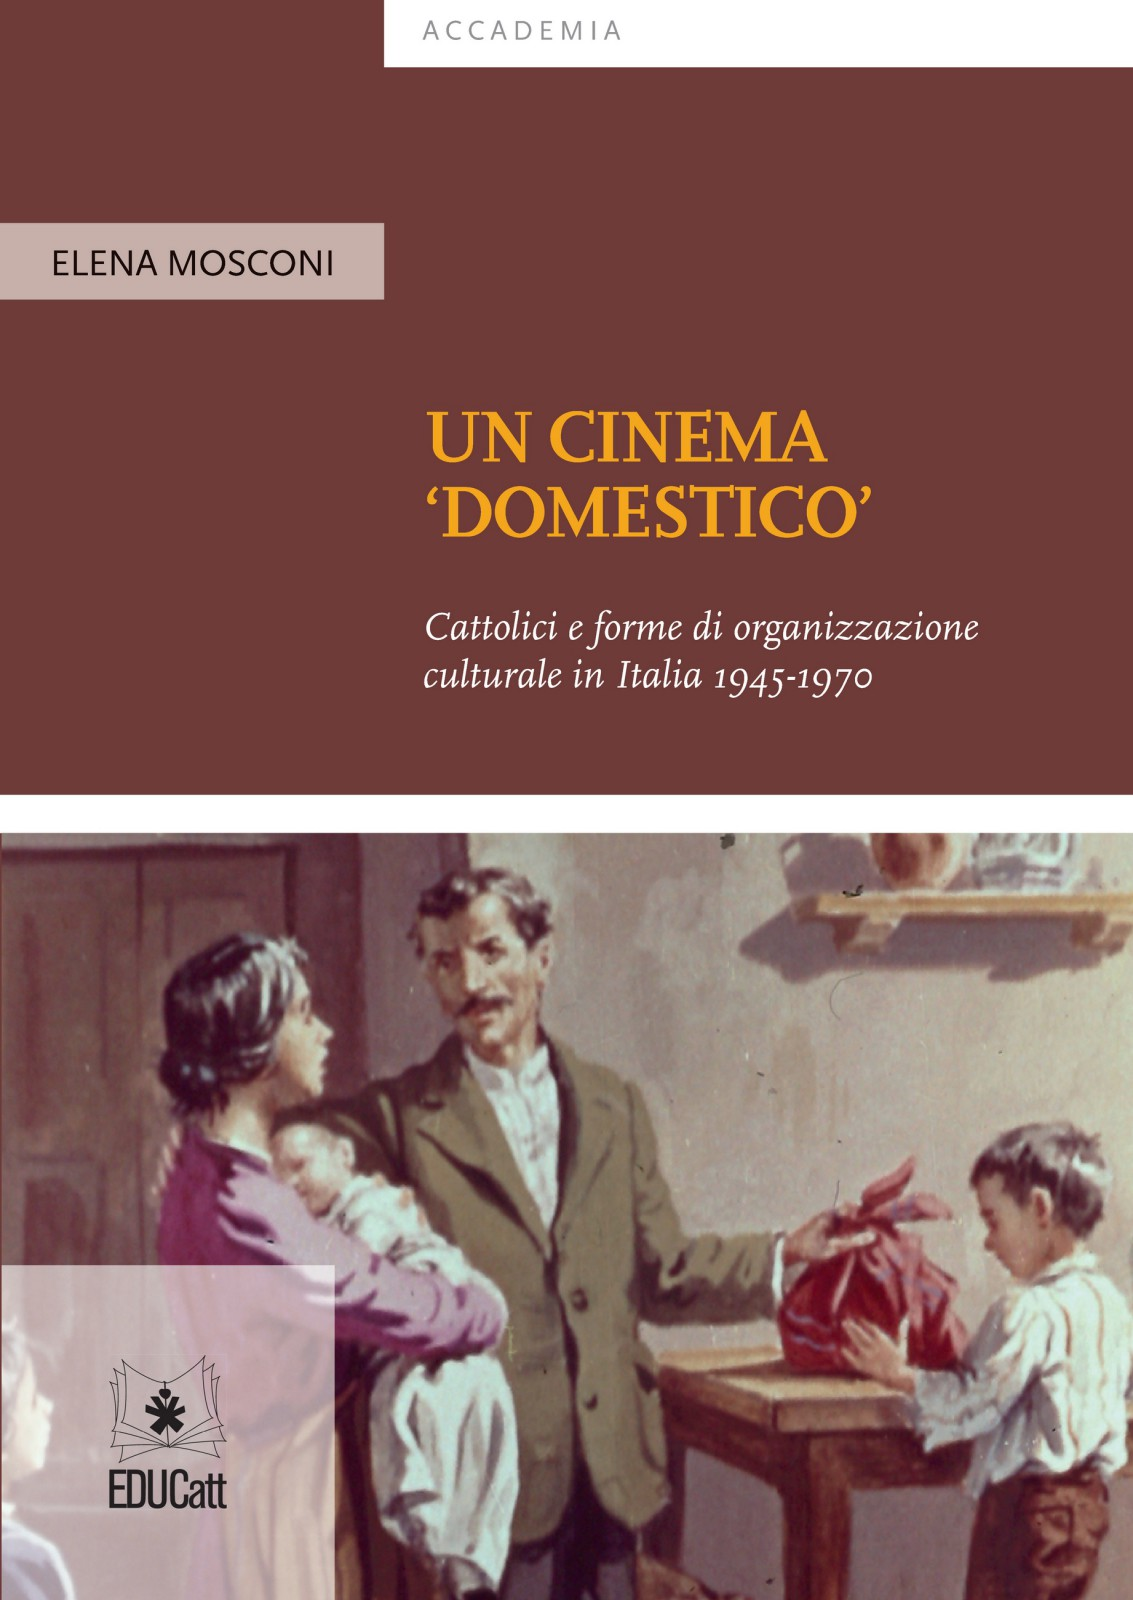 UN CINEMA 'DOMESTICO'